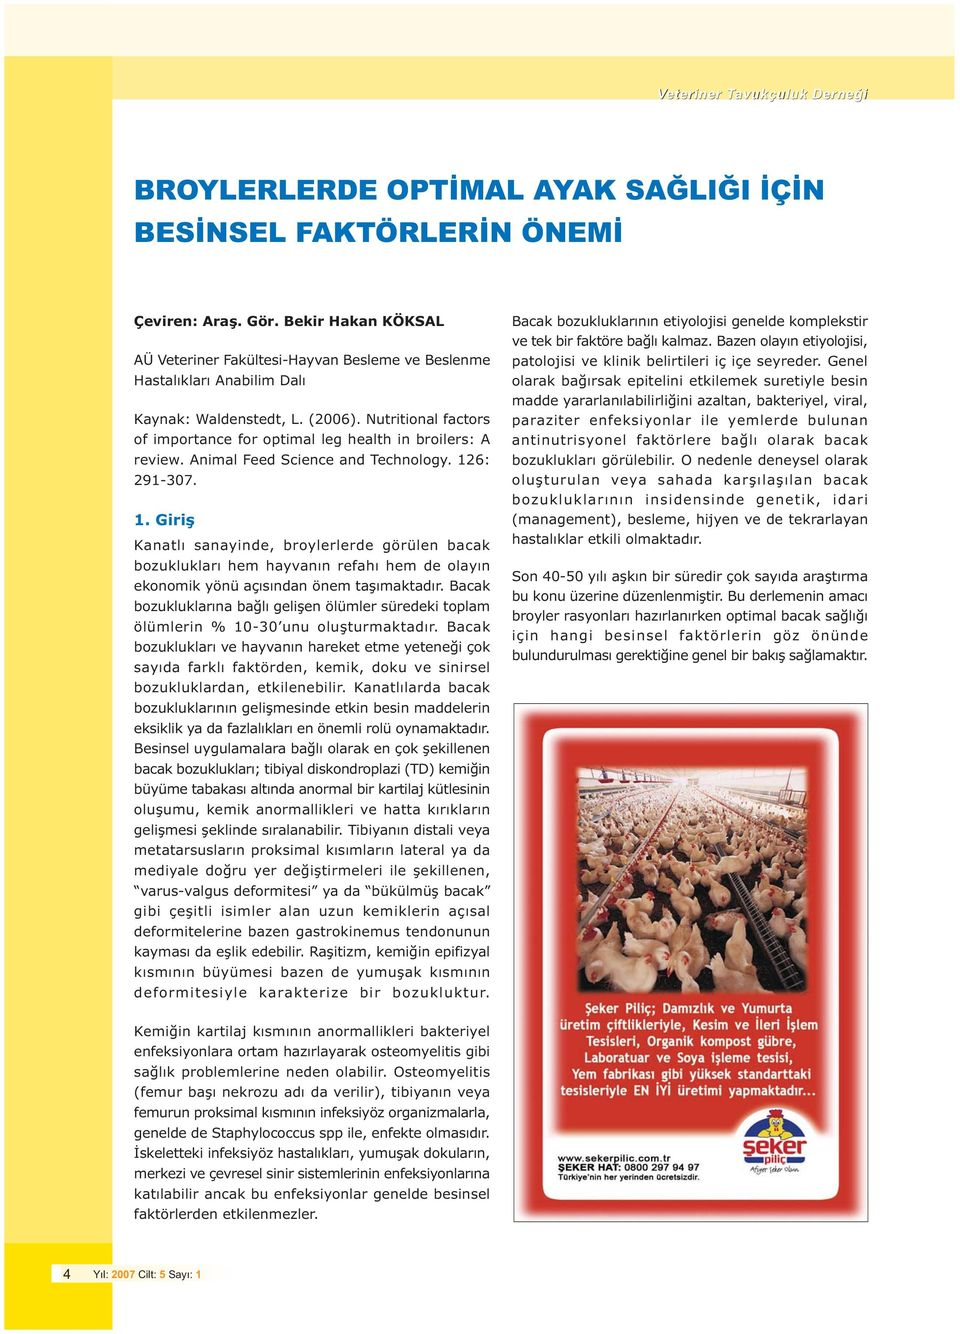 Nutritional factors of importance for optimal leg health in broilers: A review. Animal Feed Science and Technology. 12